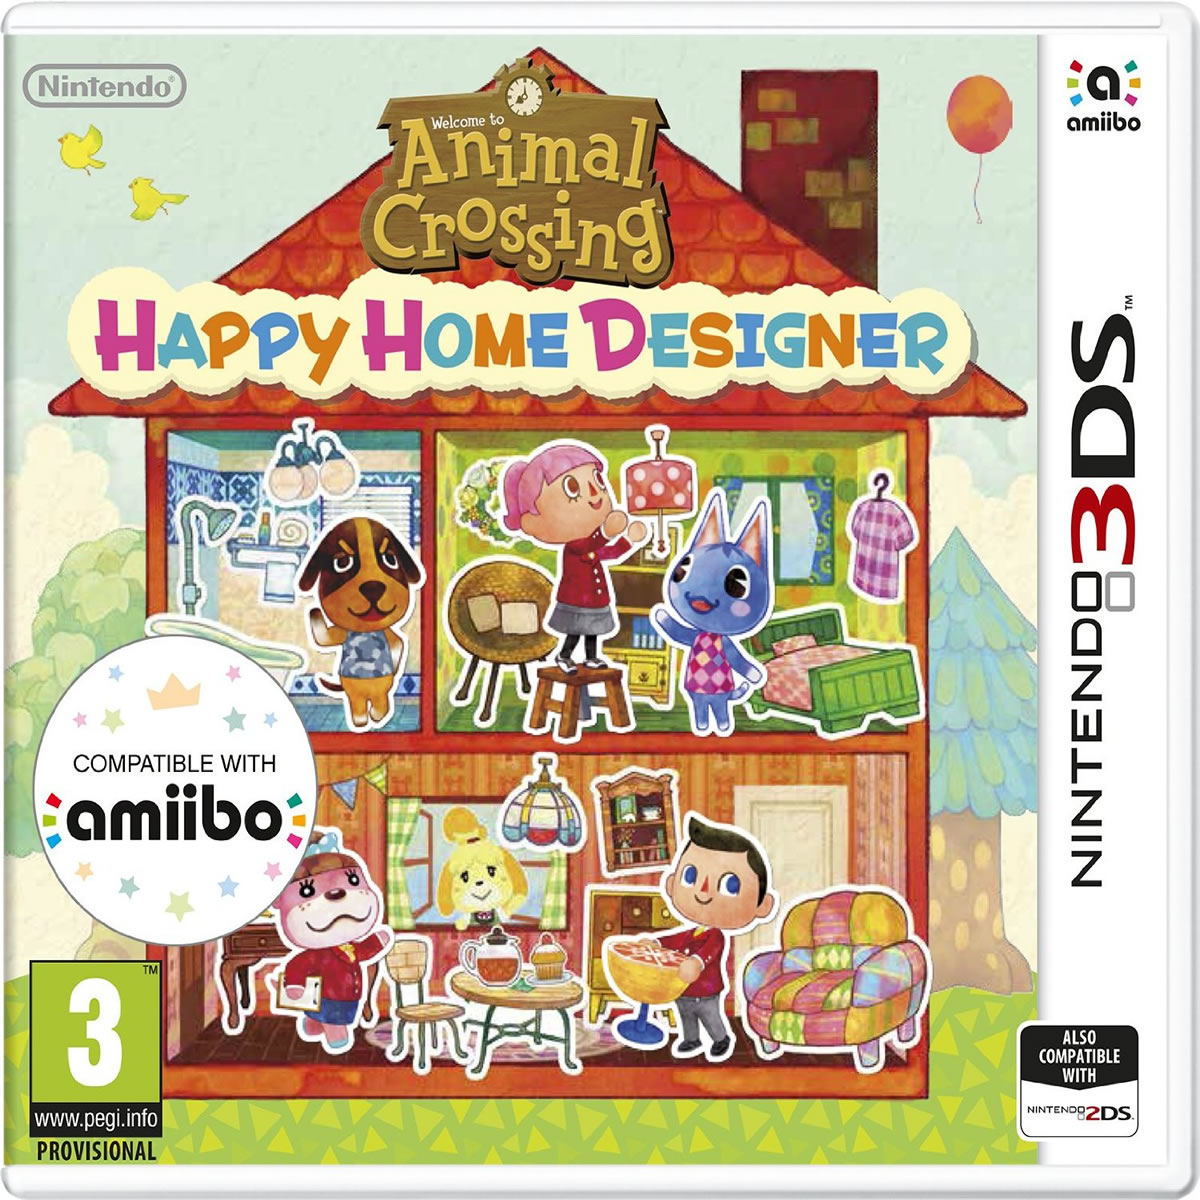 ANIMAL CROSSING HAPPY HOME DESIGNER NOCARD (3DS, DS)